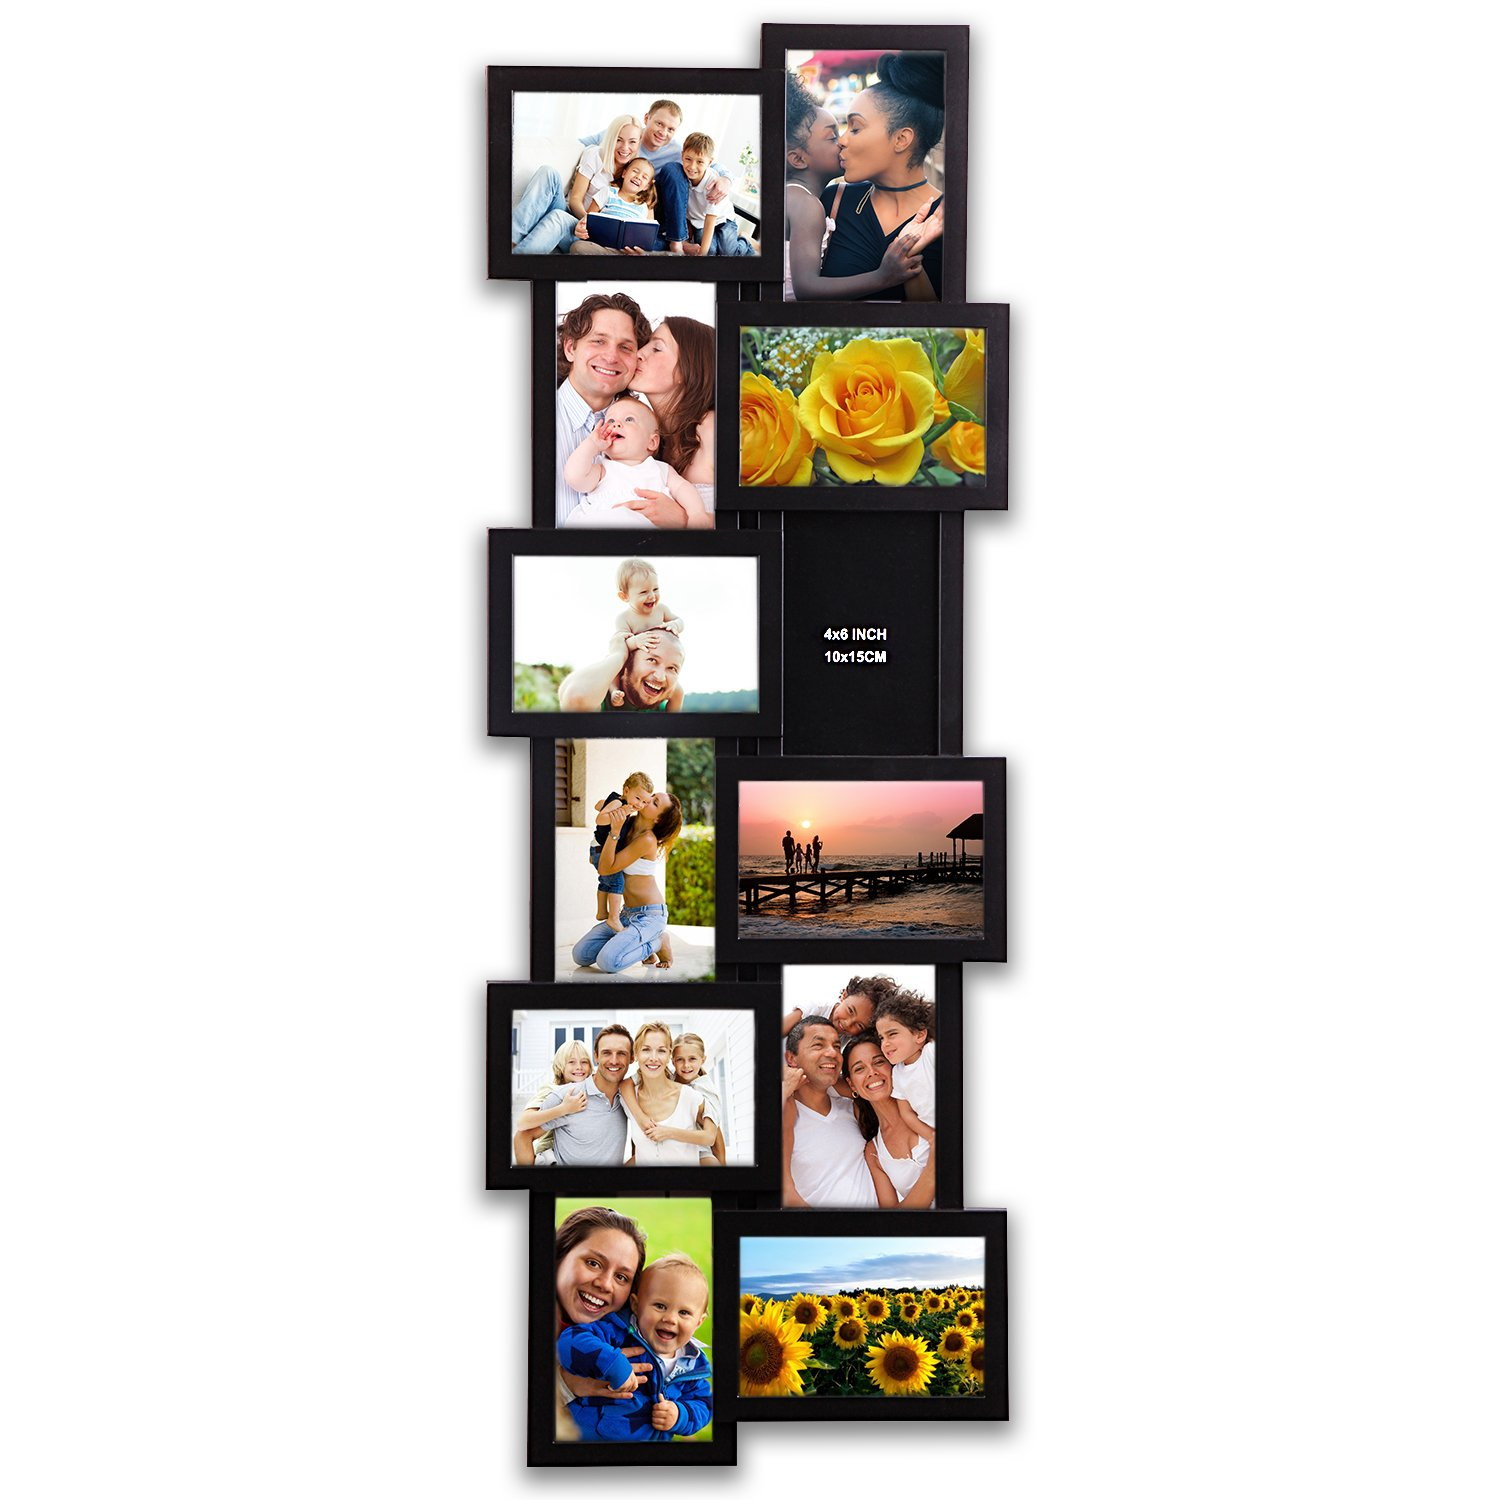 Hello Laura 32 by 12 inch Gallery Collage Wall Hanging Photo Frame For 4 x 6 Photo, 12 opening Photo Sockets, Black Edge